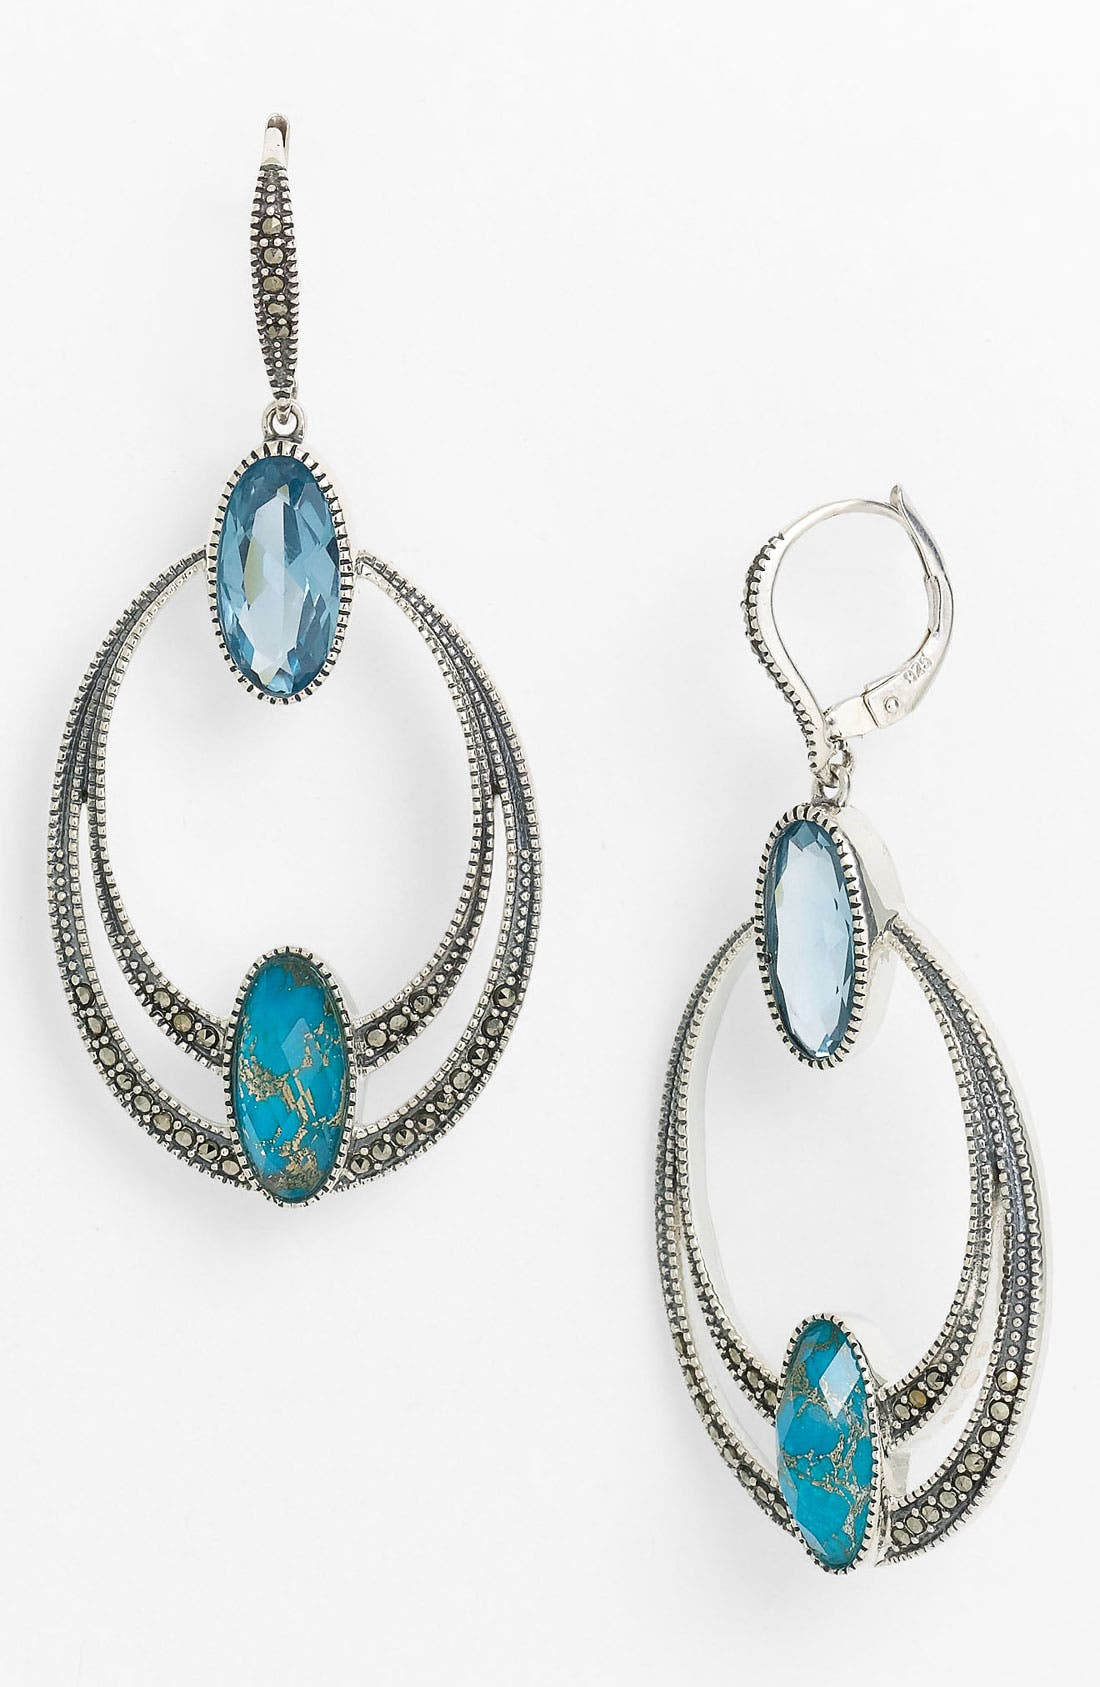 Main Image - Judith Jack Frontal Hoop Earrings